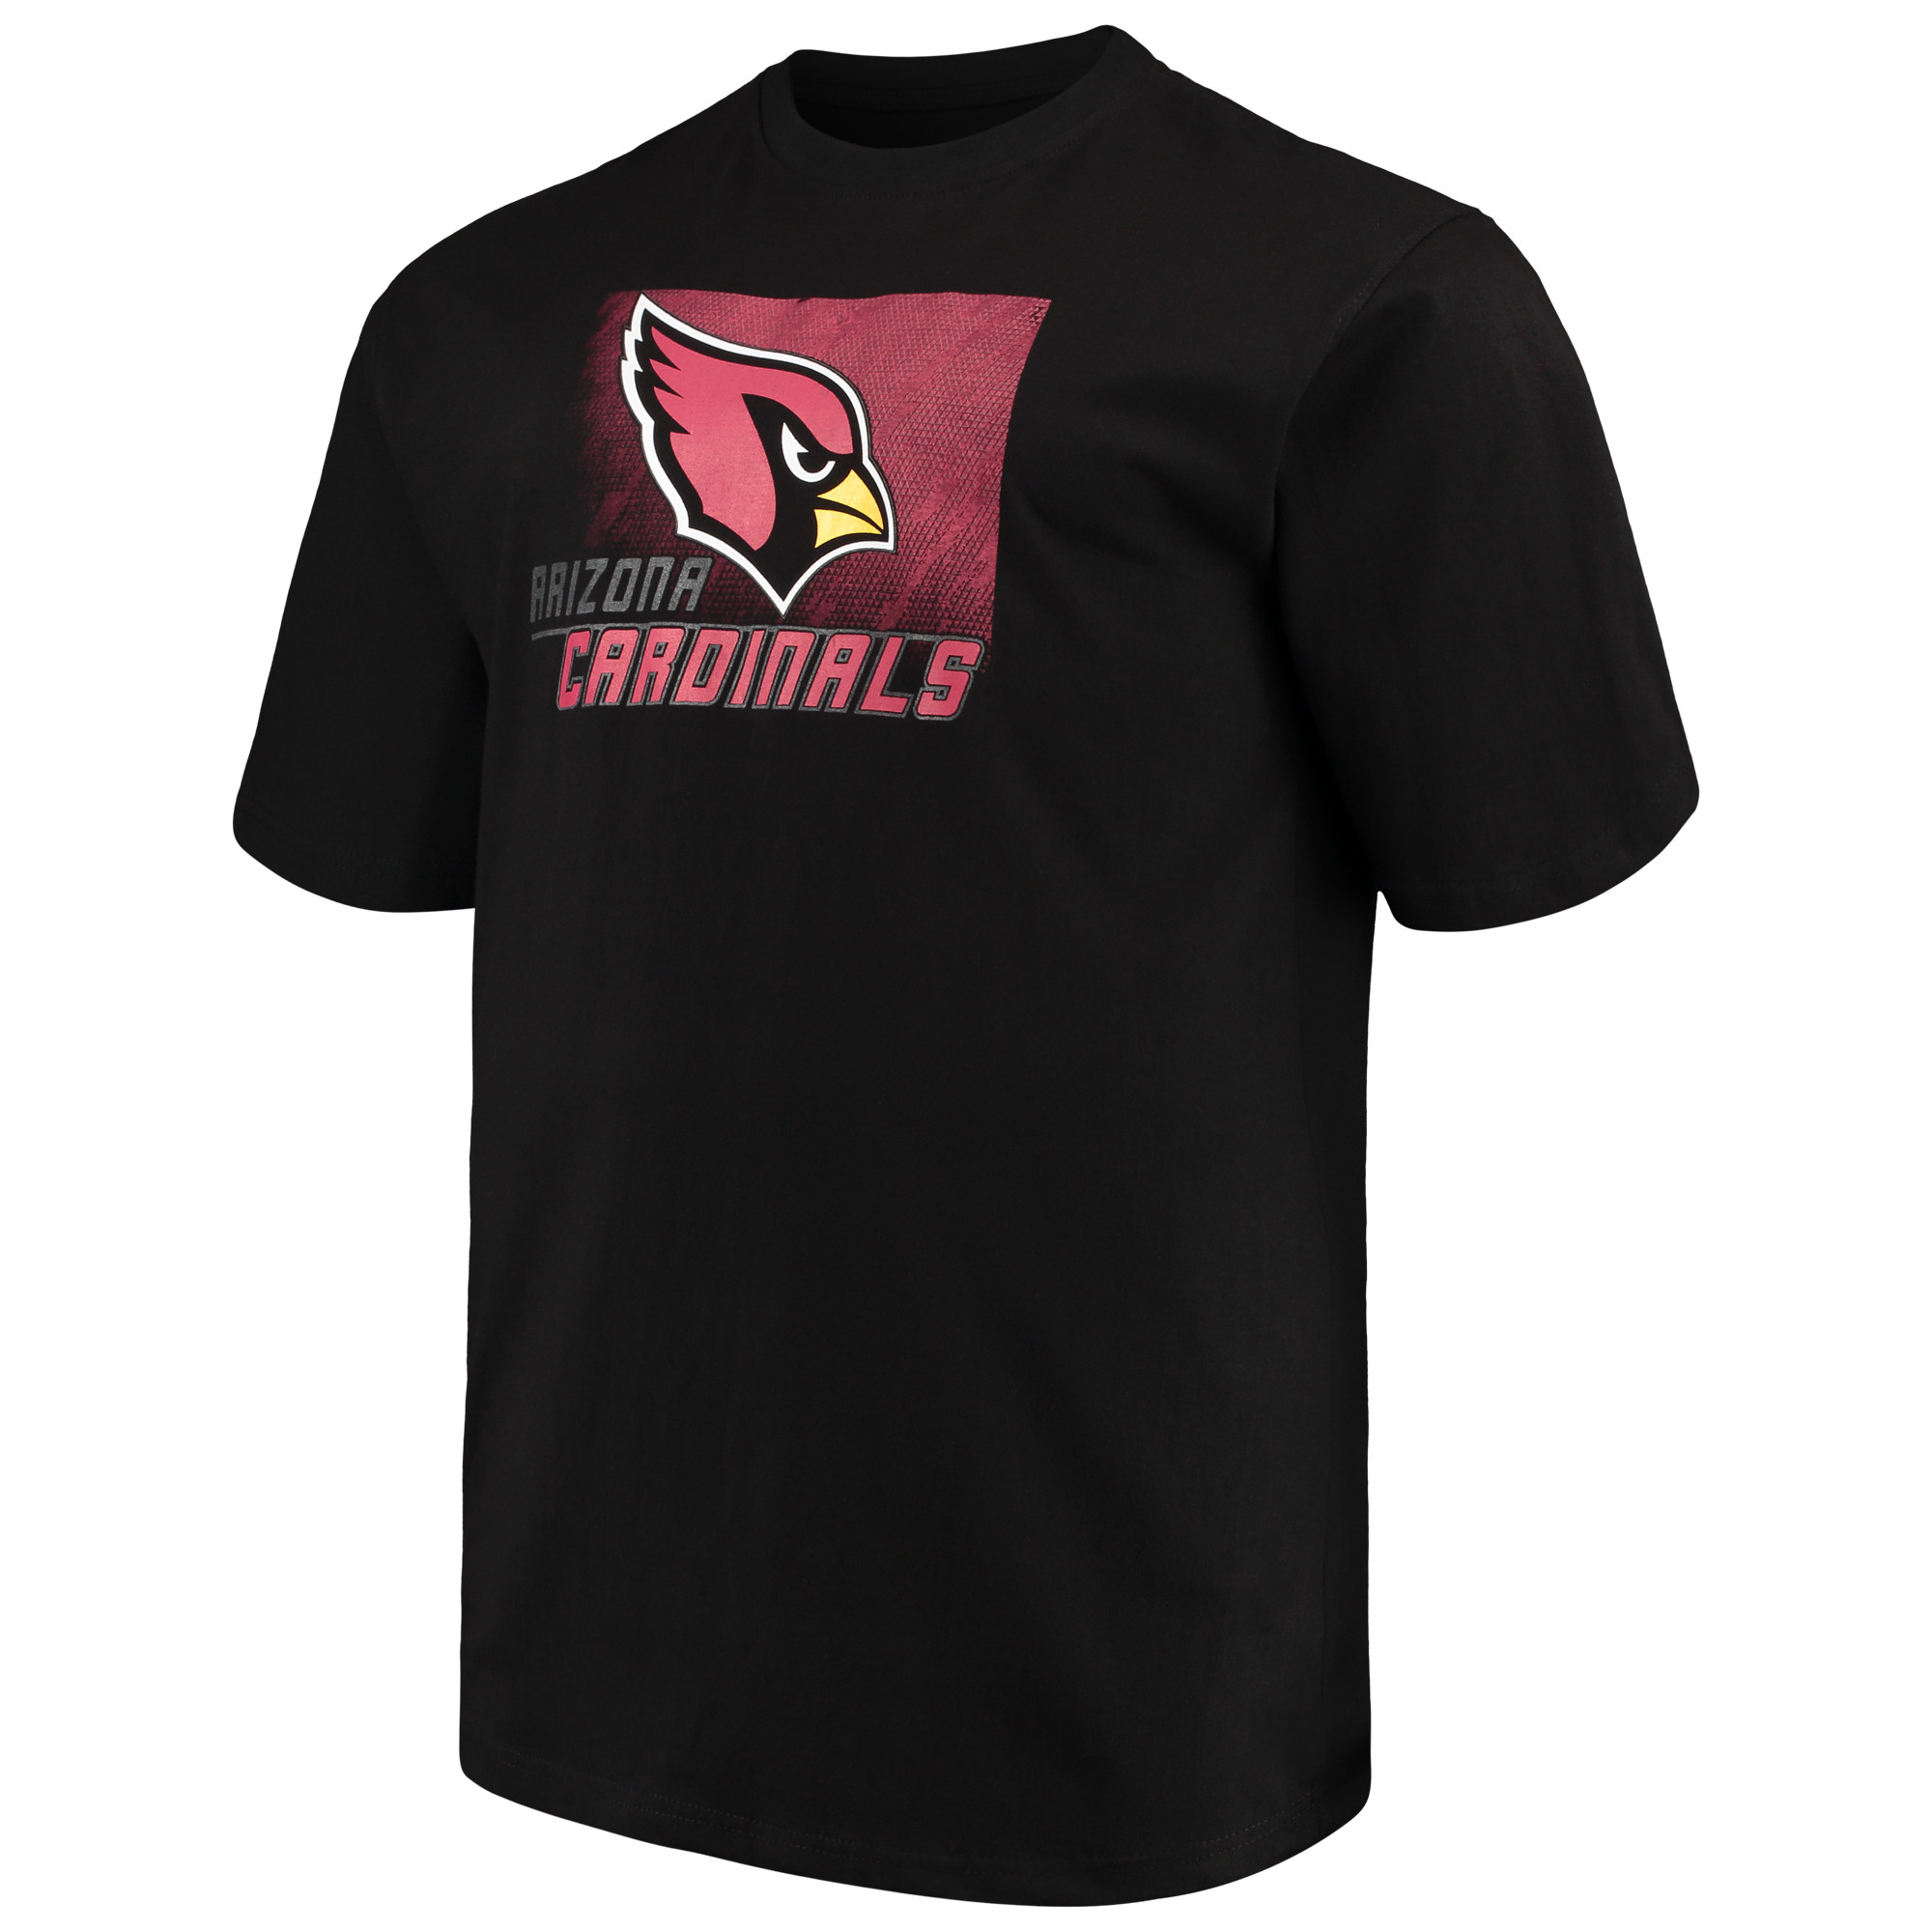 Men's Majestic Black Arizona Cardinals Big & Tall Reflective T-Shirt